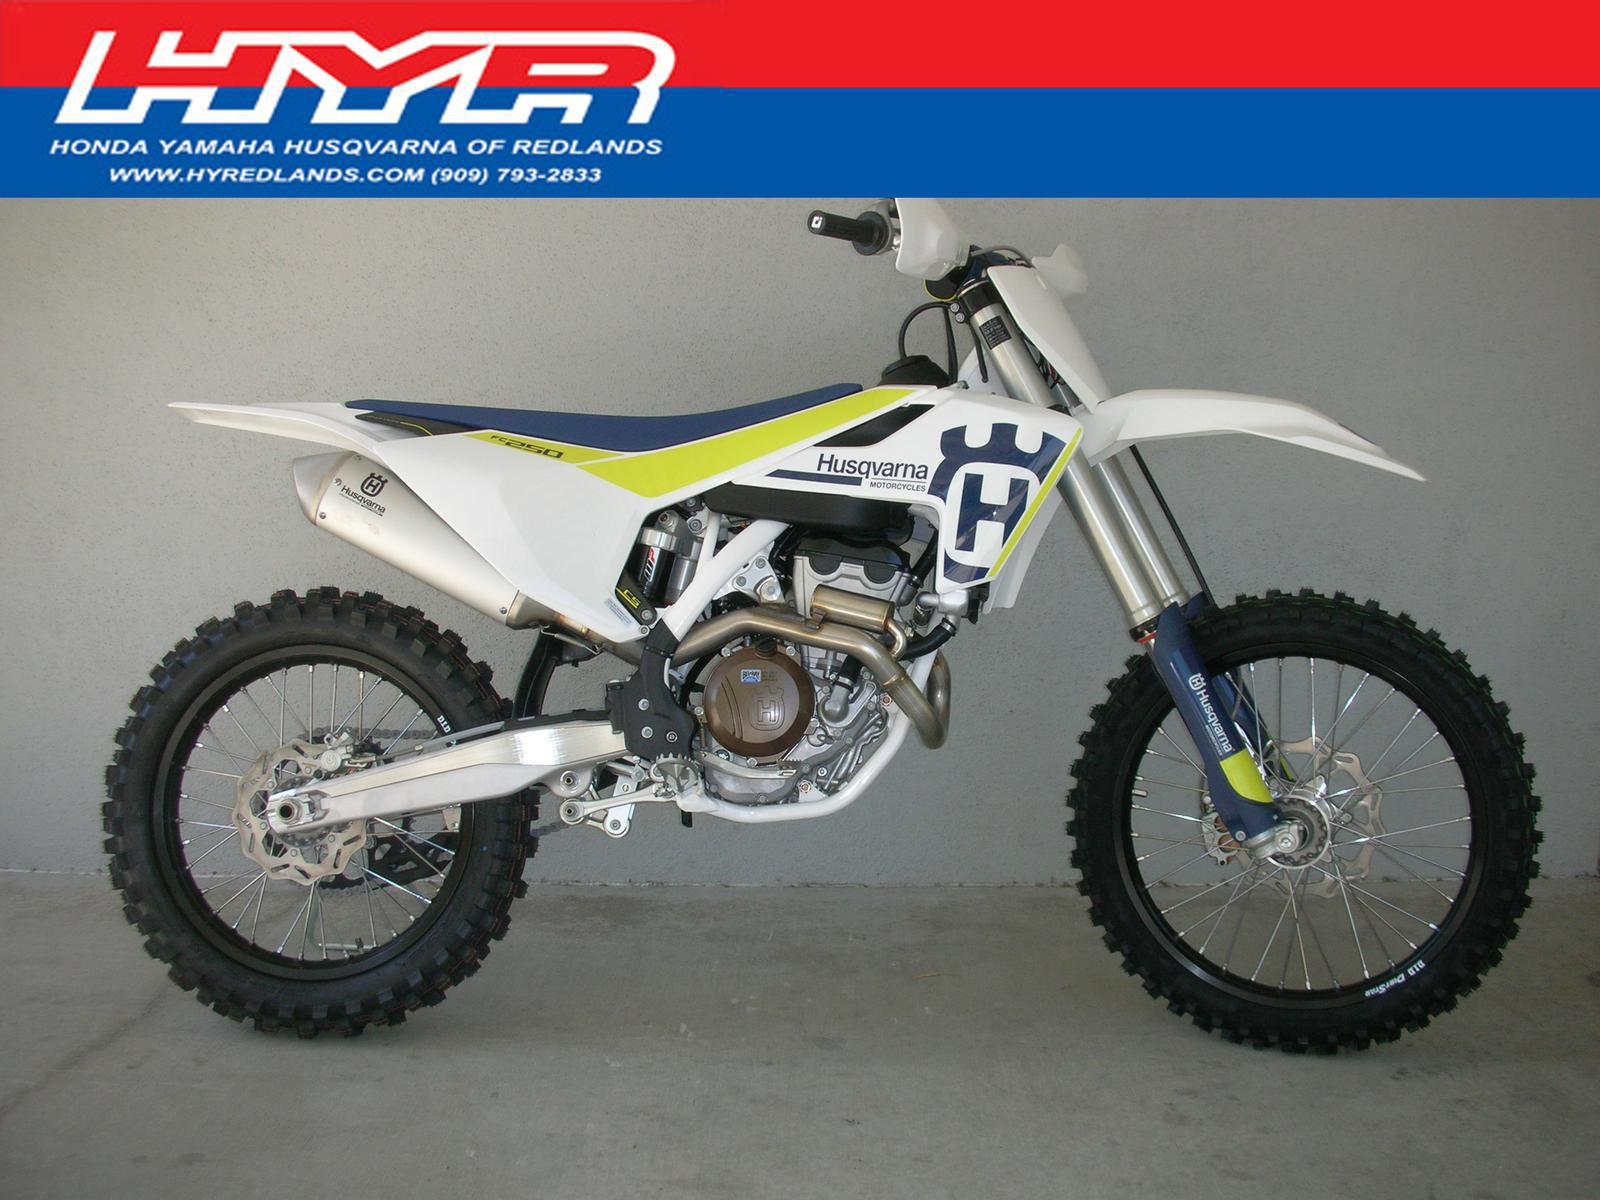 2017 Husqvarna FC250 for sale 39726